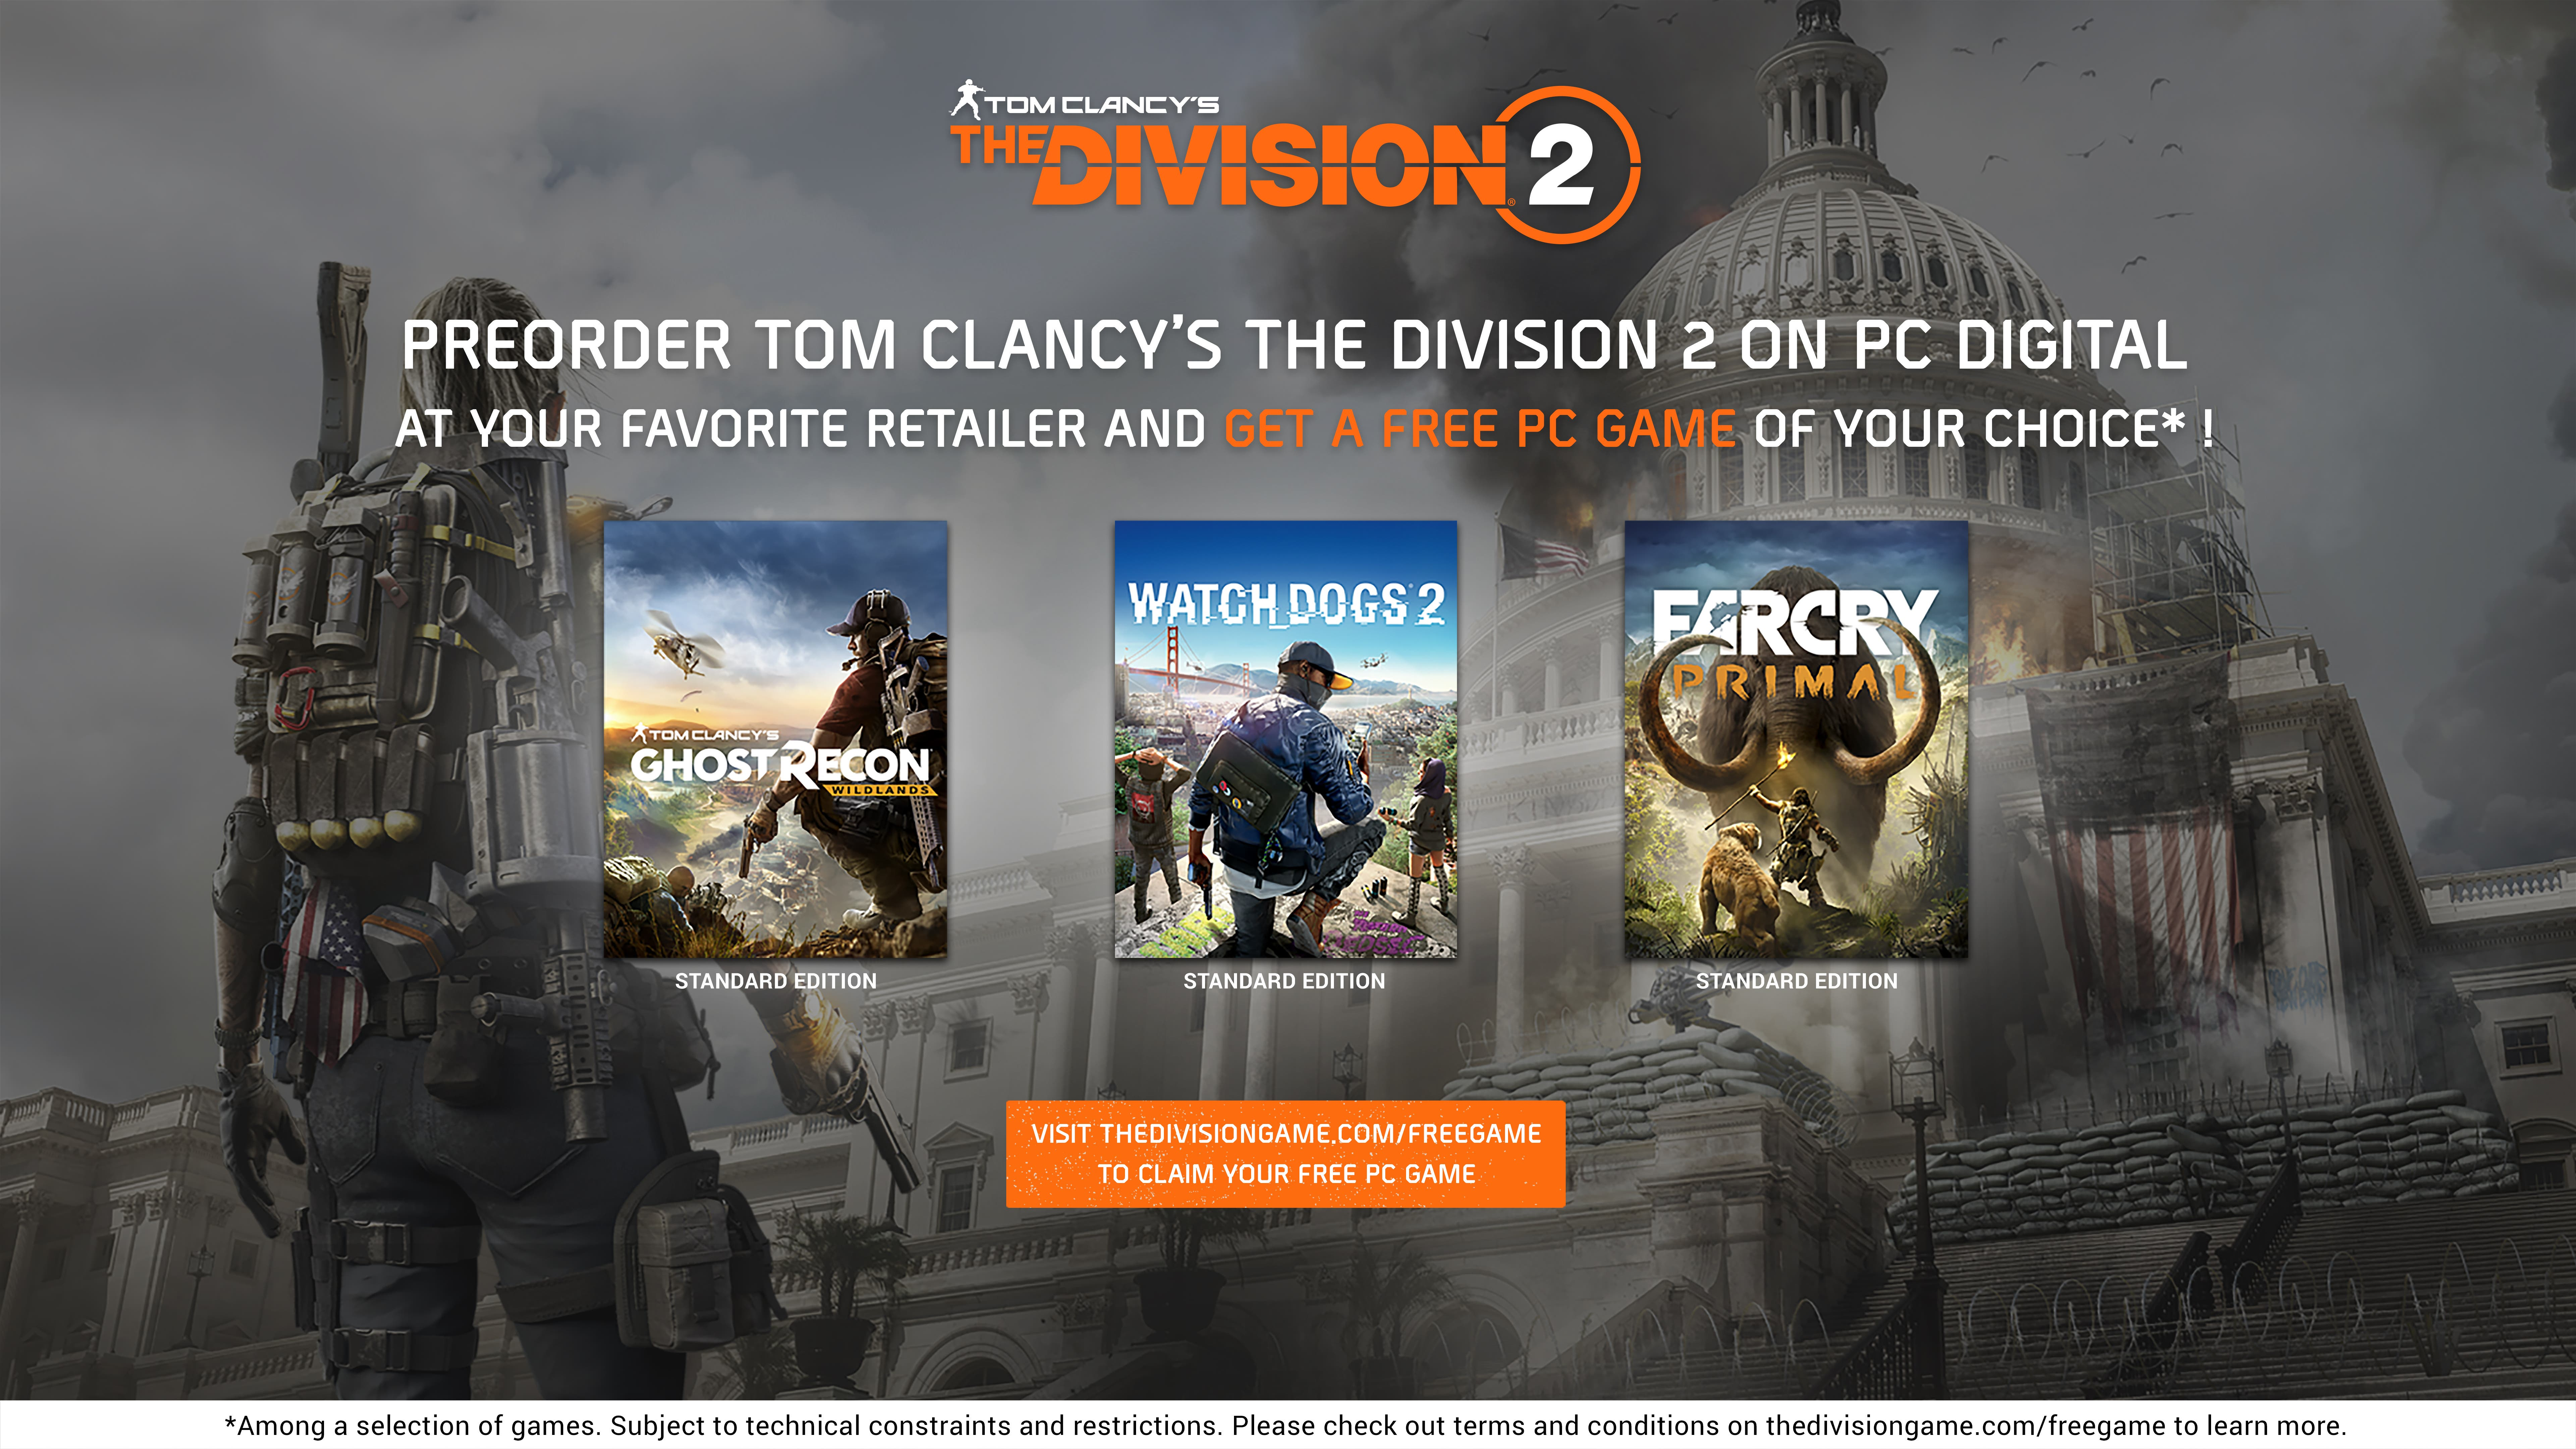 Pre-order the digital version of Tom Clancy's The Division 2